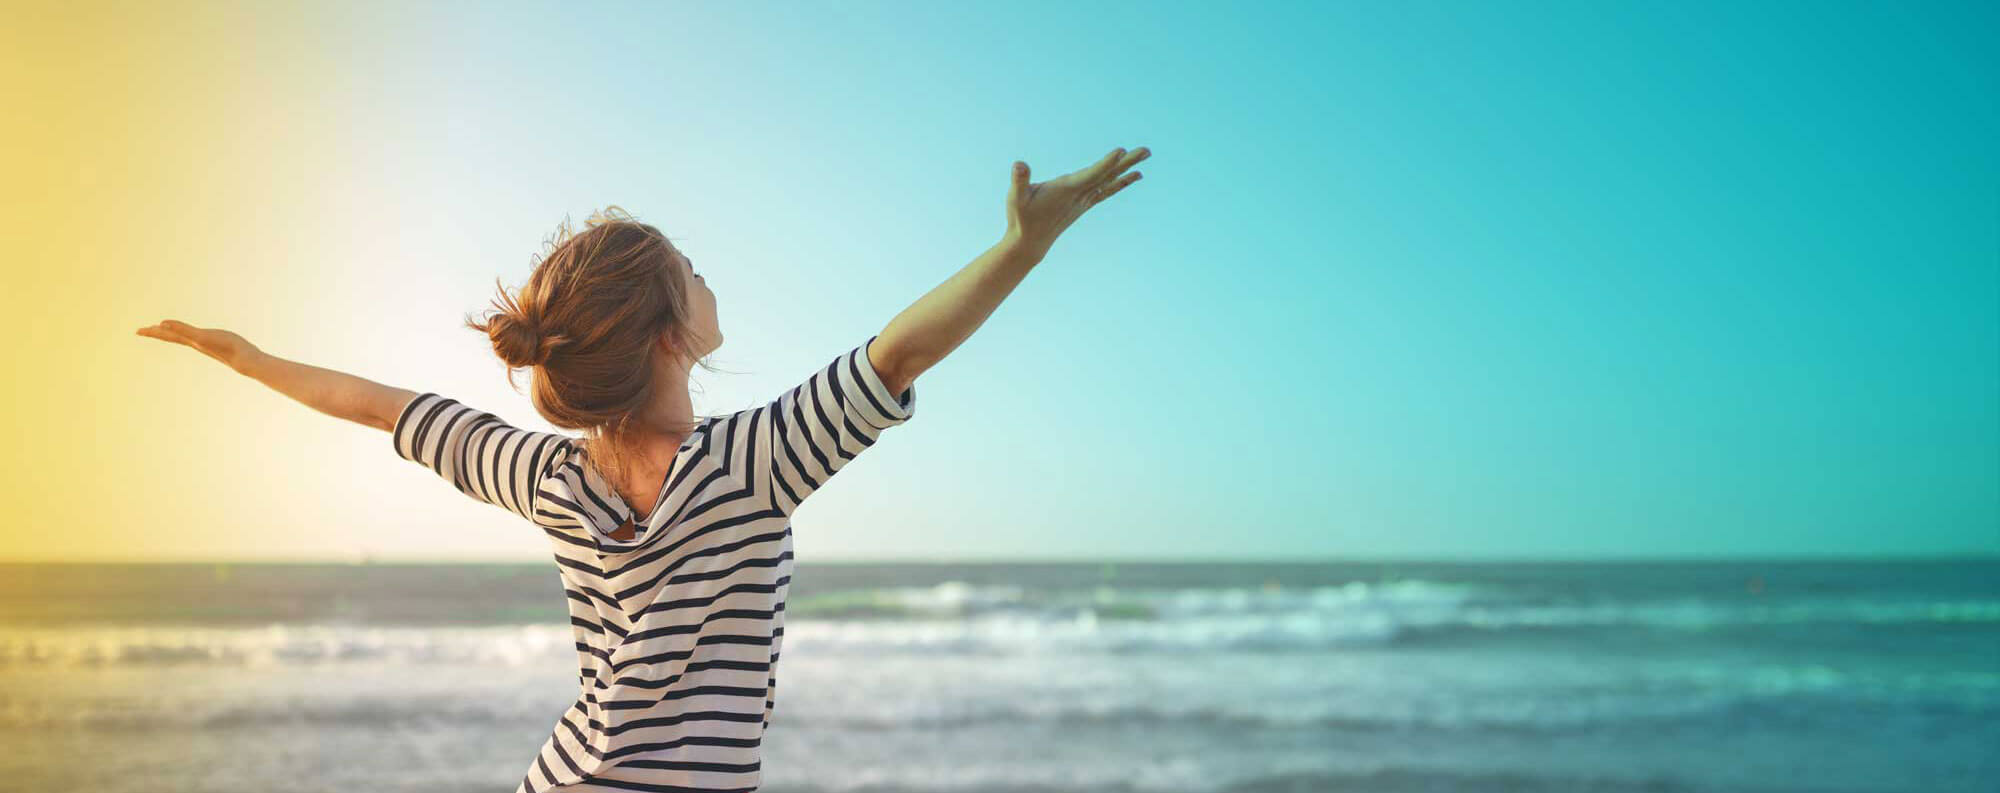 Woman with arms outstretched on beach